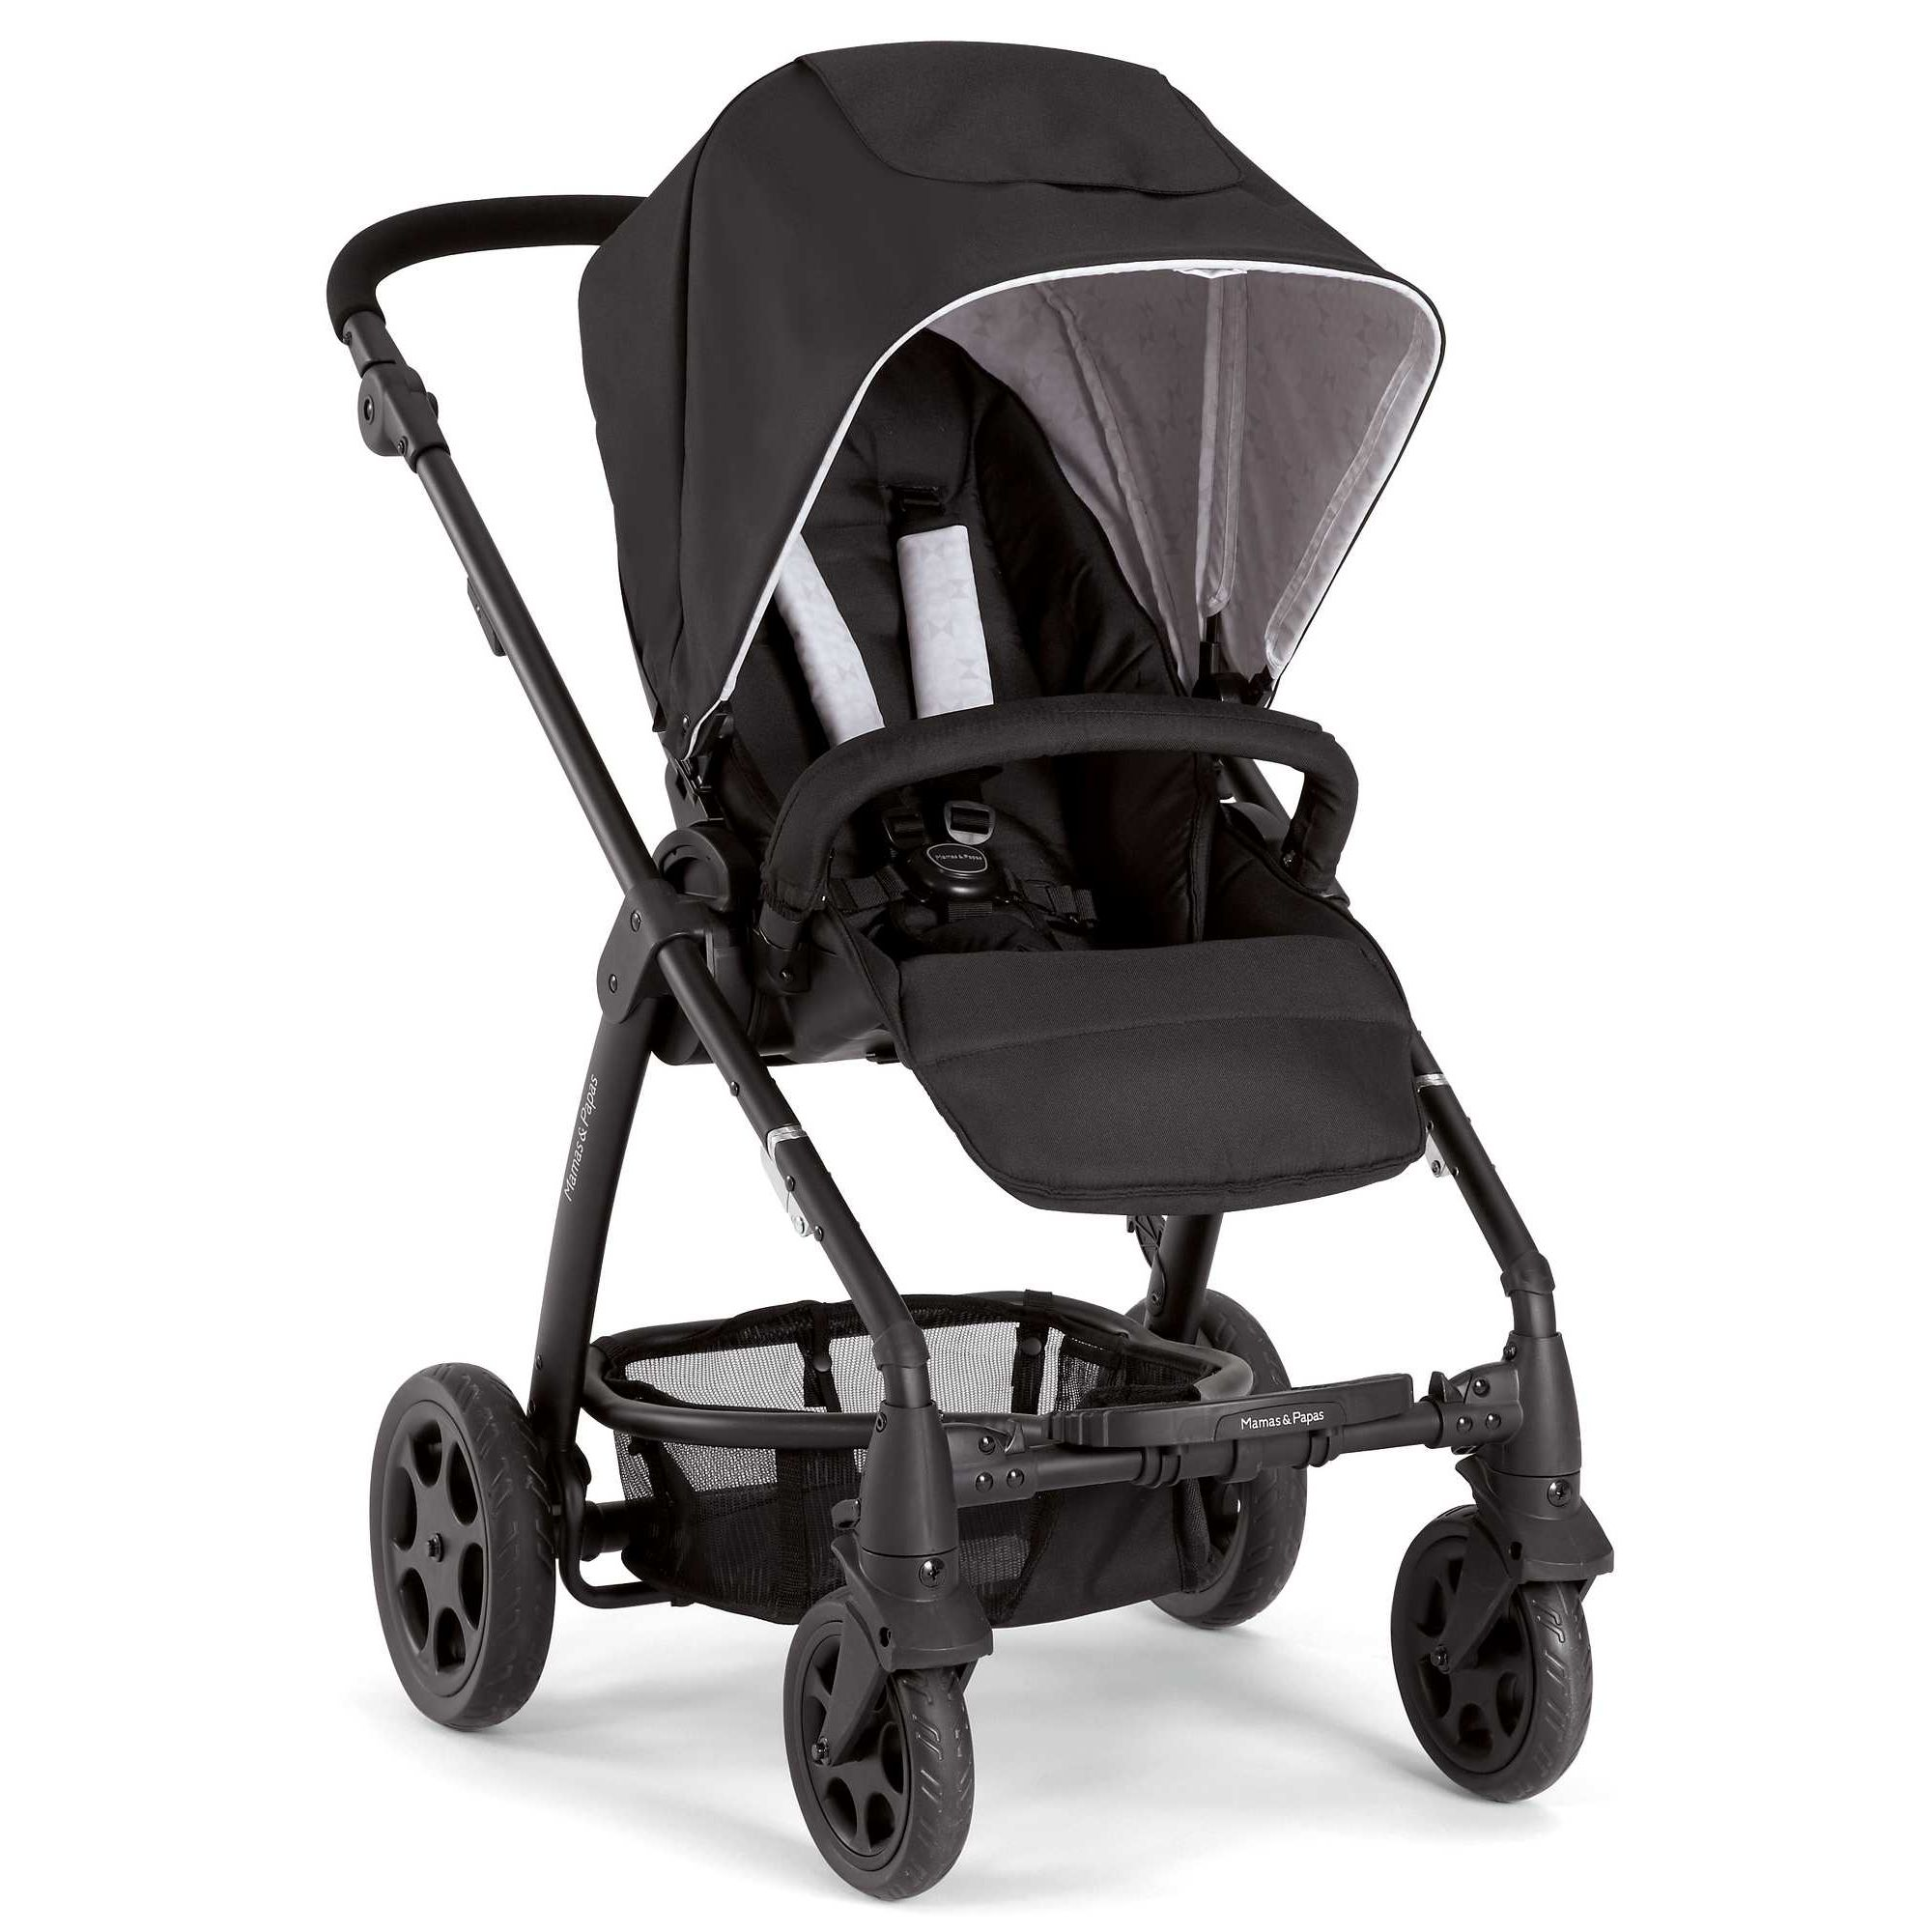 Mamas & Papas - Sola 2 in 1 - Jet Black at Tesco Direct